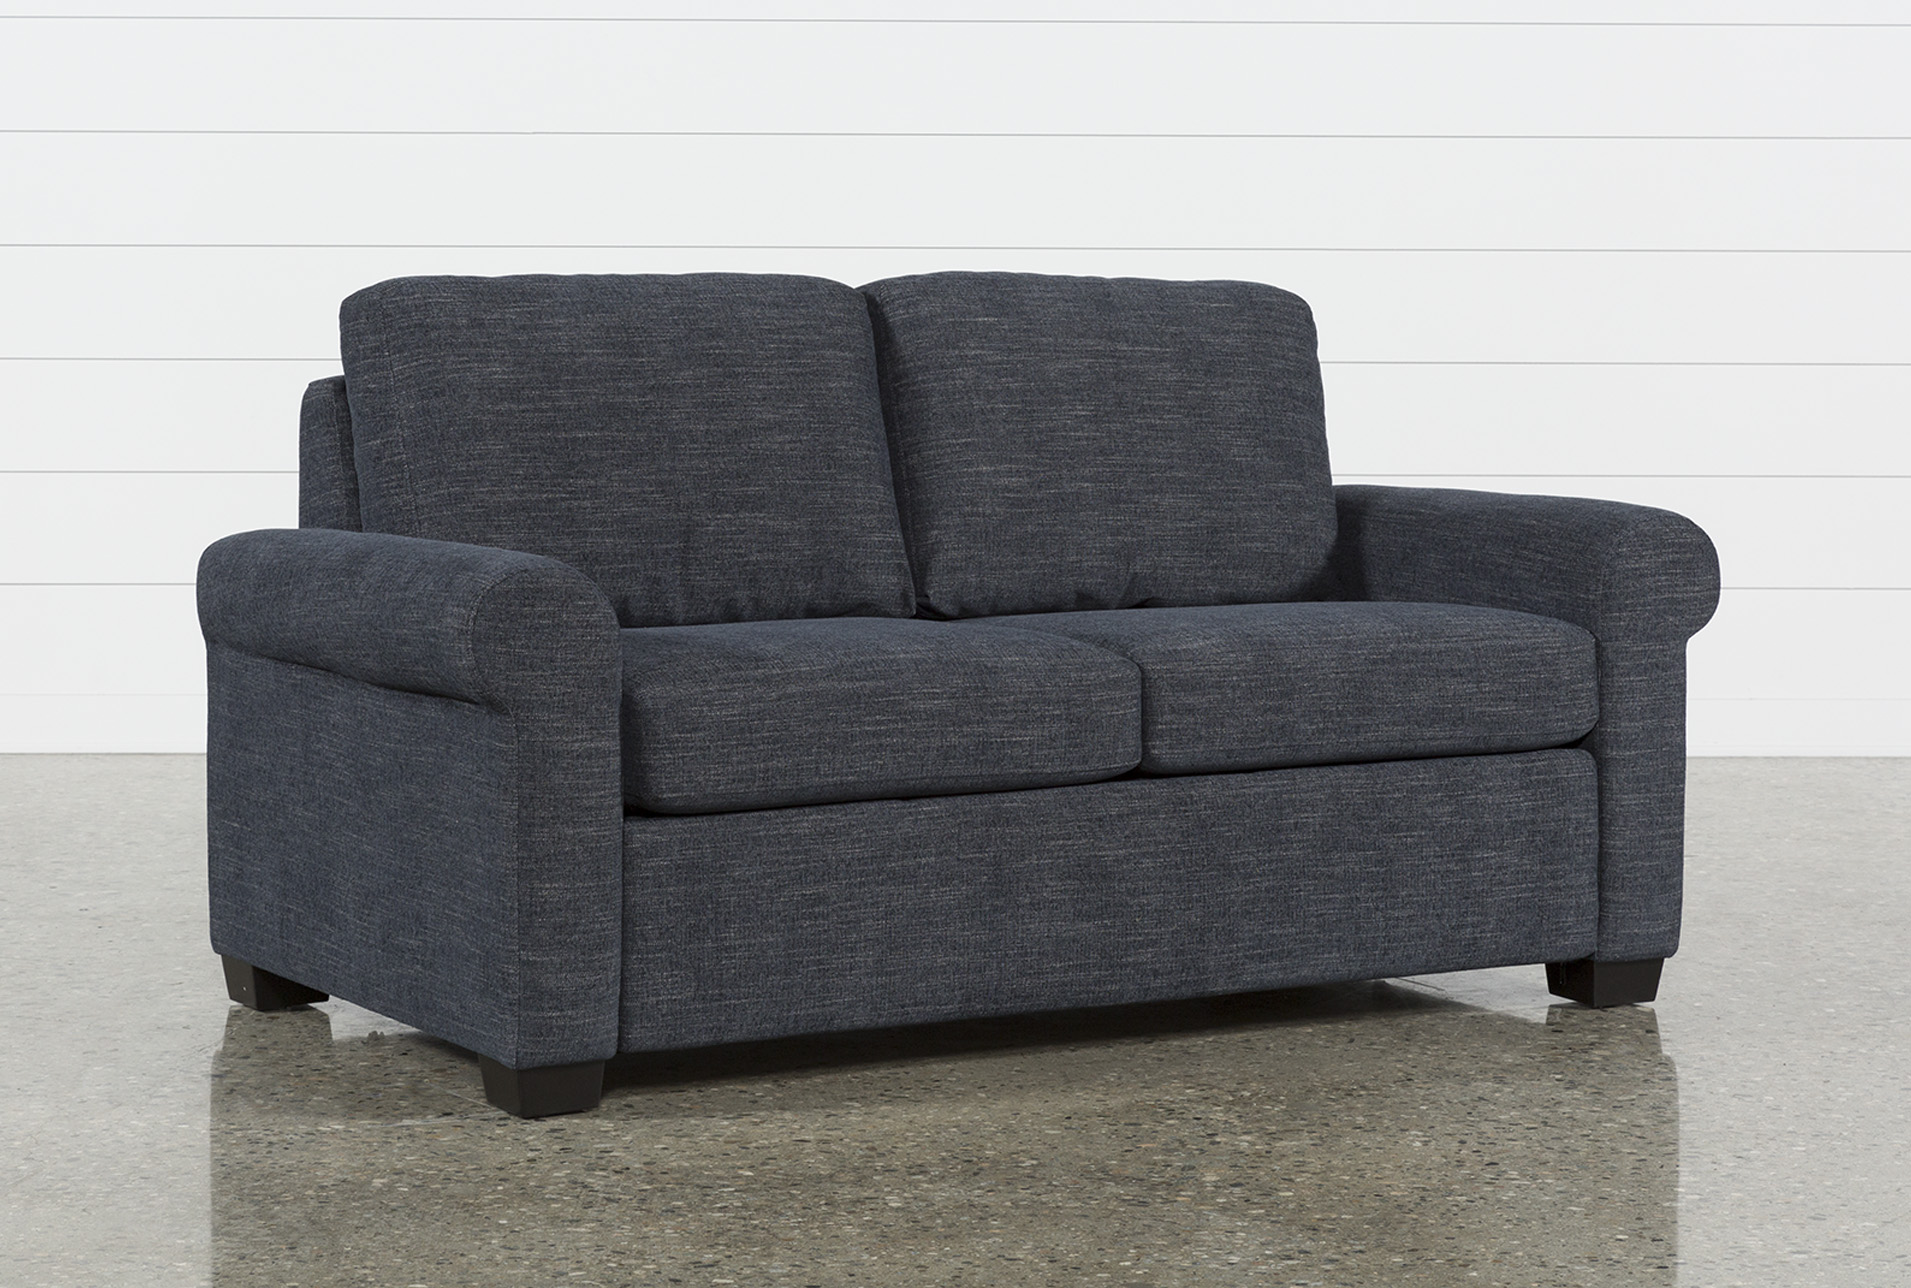 alexis denim full sofa sleeper (qty: 1) has been successfully added to your  cart. 96ZTSCQY